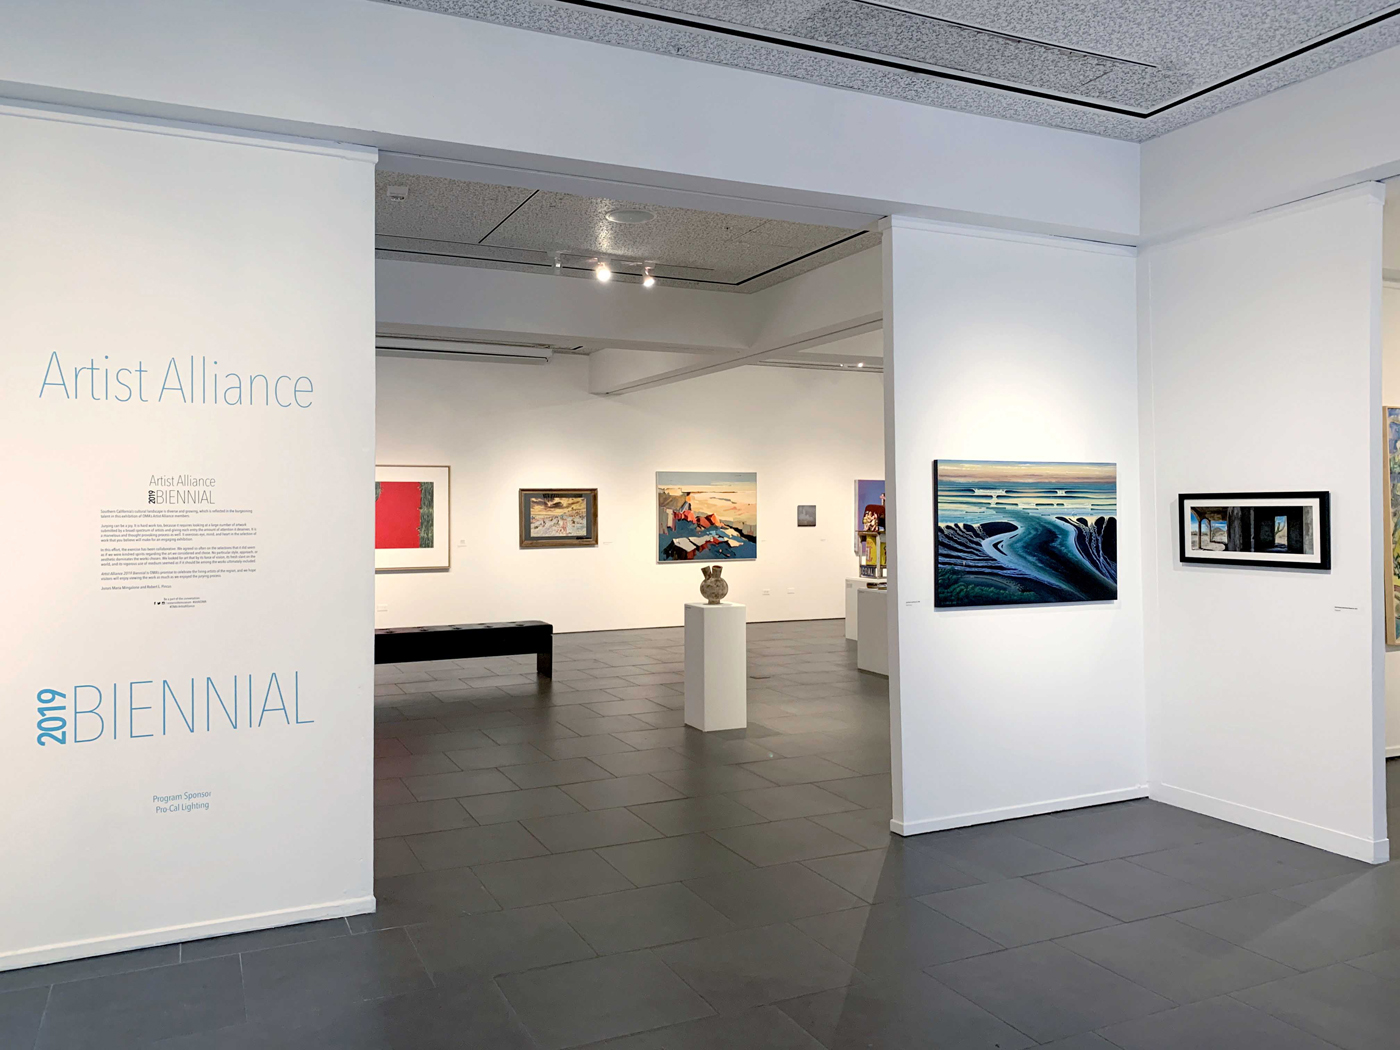 Artist Alliance 2019 Biennial exhibition entrance